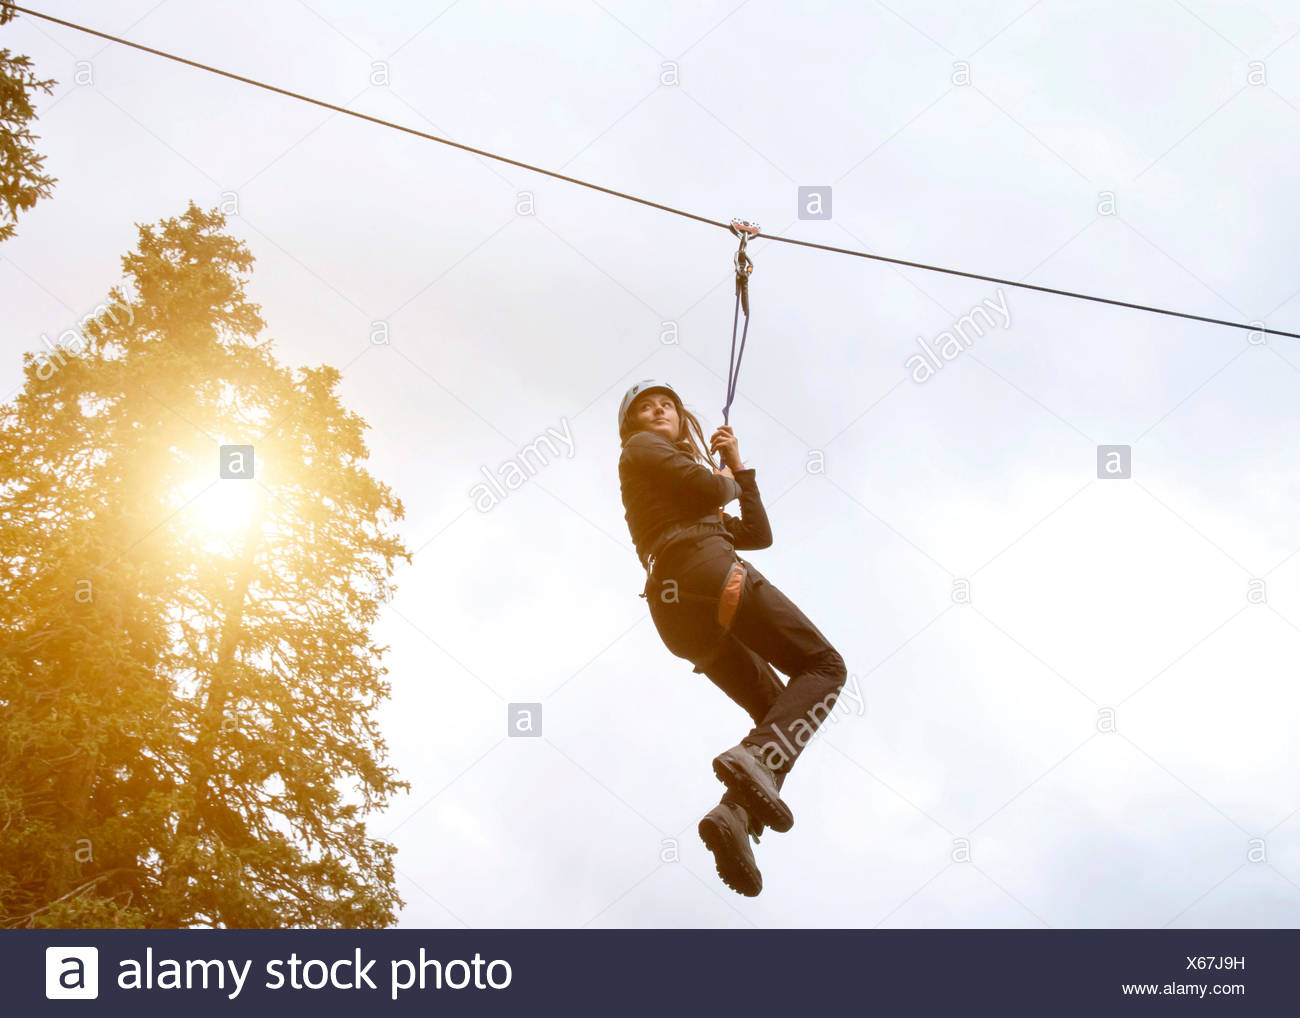 Teenage girl on zip wire Photo Stock